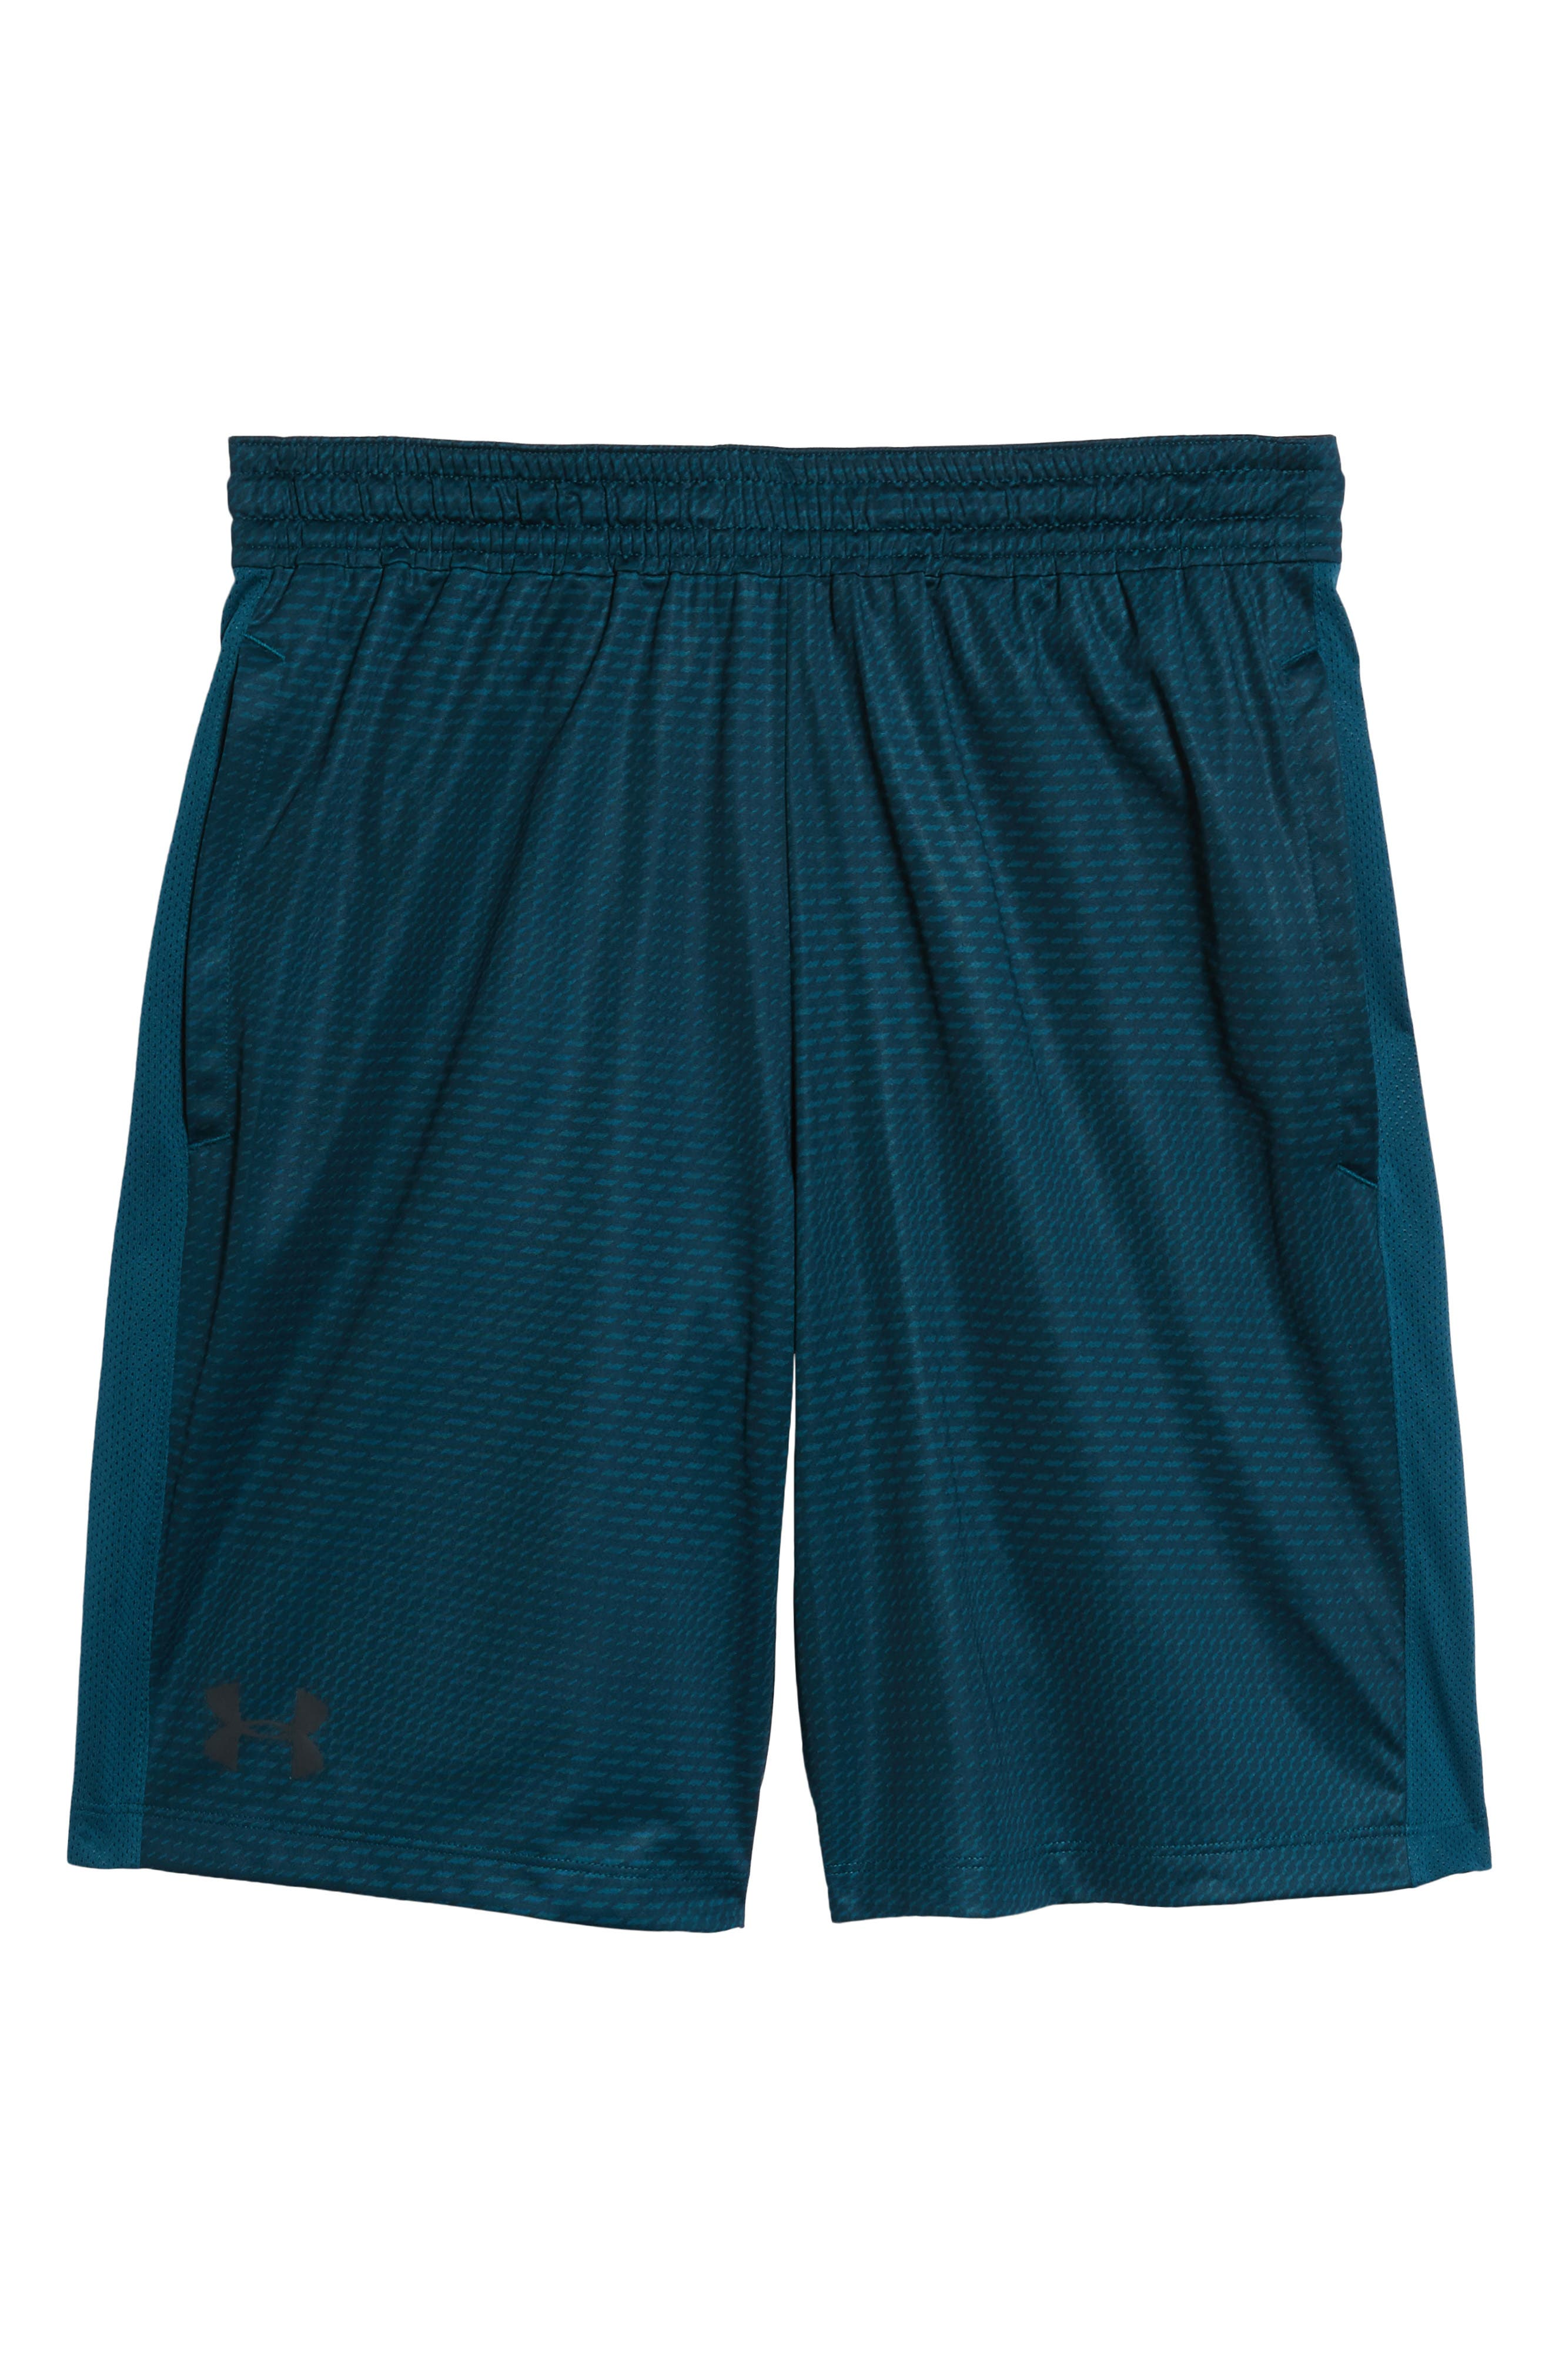 Raid 2.0 Classic Fit Shorts,                             Alternate thumbnail 6, color,                             Tourmaline Teal/ Stealth Gray